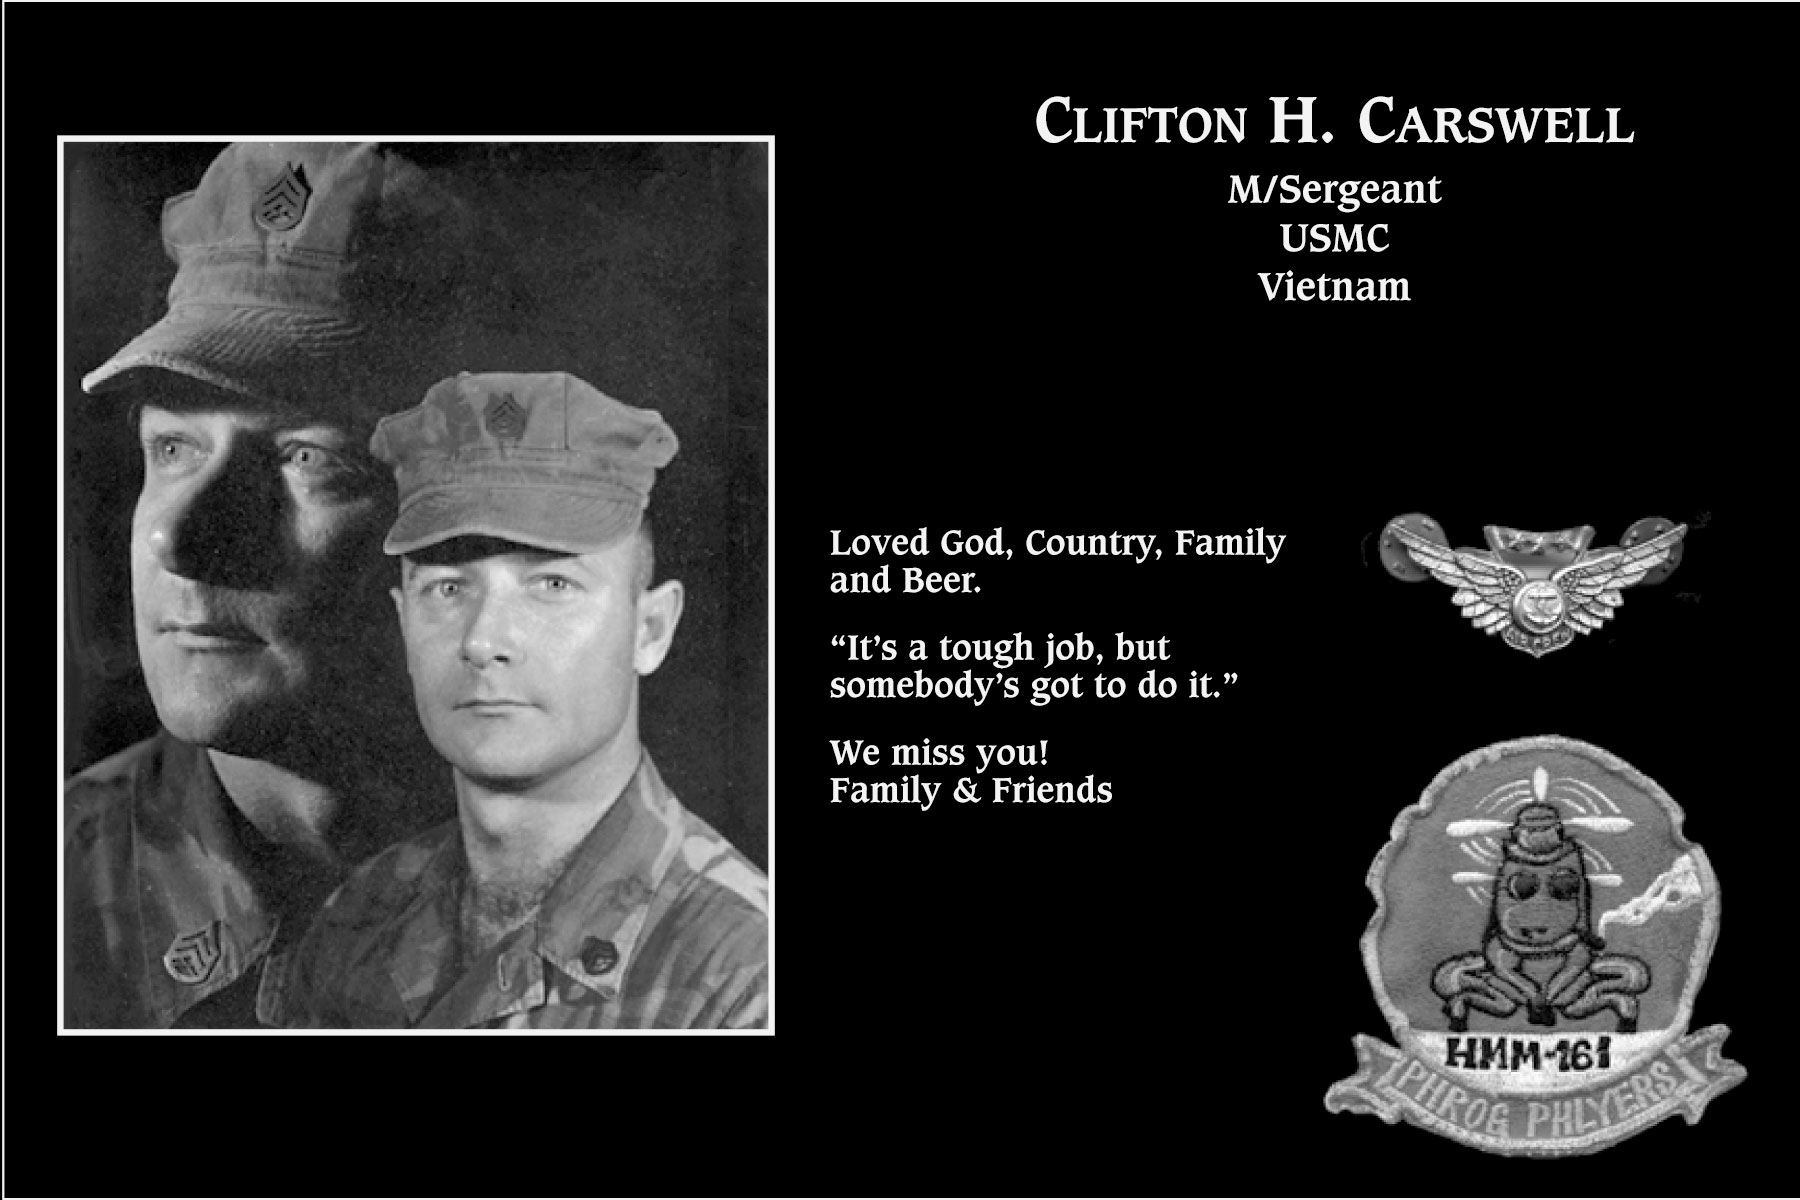 Clifton H. Carswell